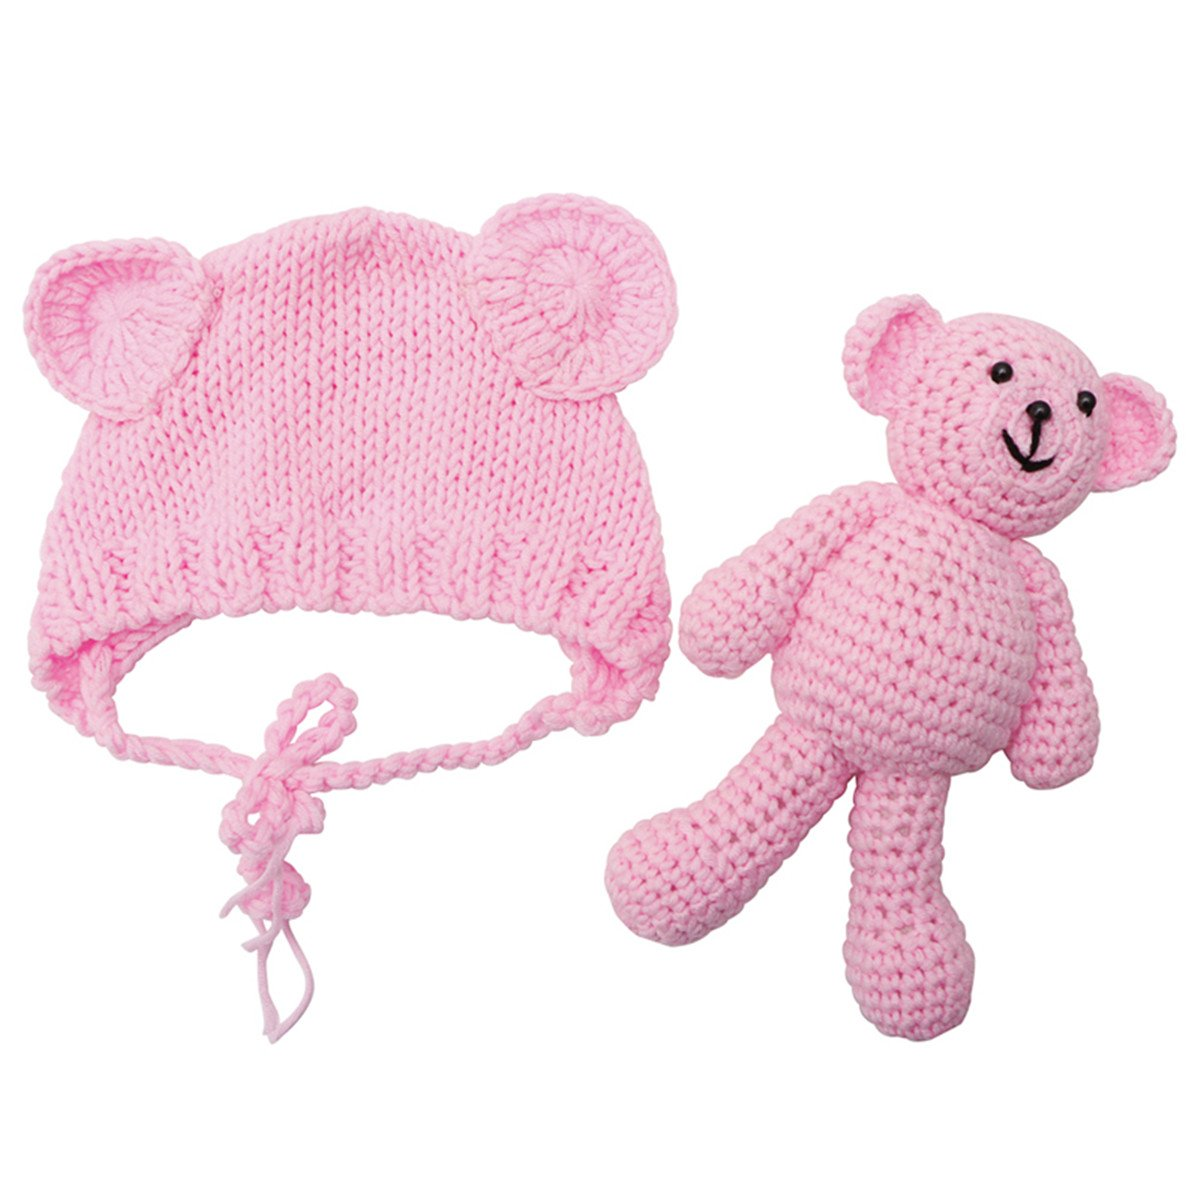 ECYC Newborn Baby Photography Props Crochet Costume Outfits Beanie Hat Photography Bear Set